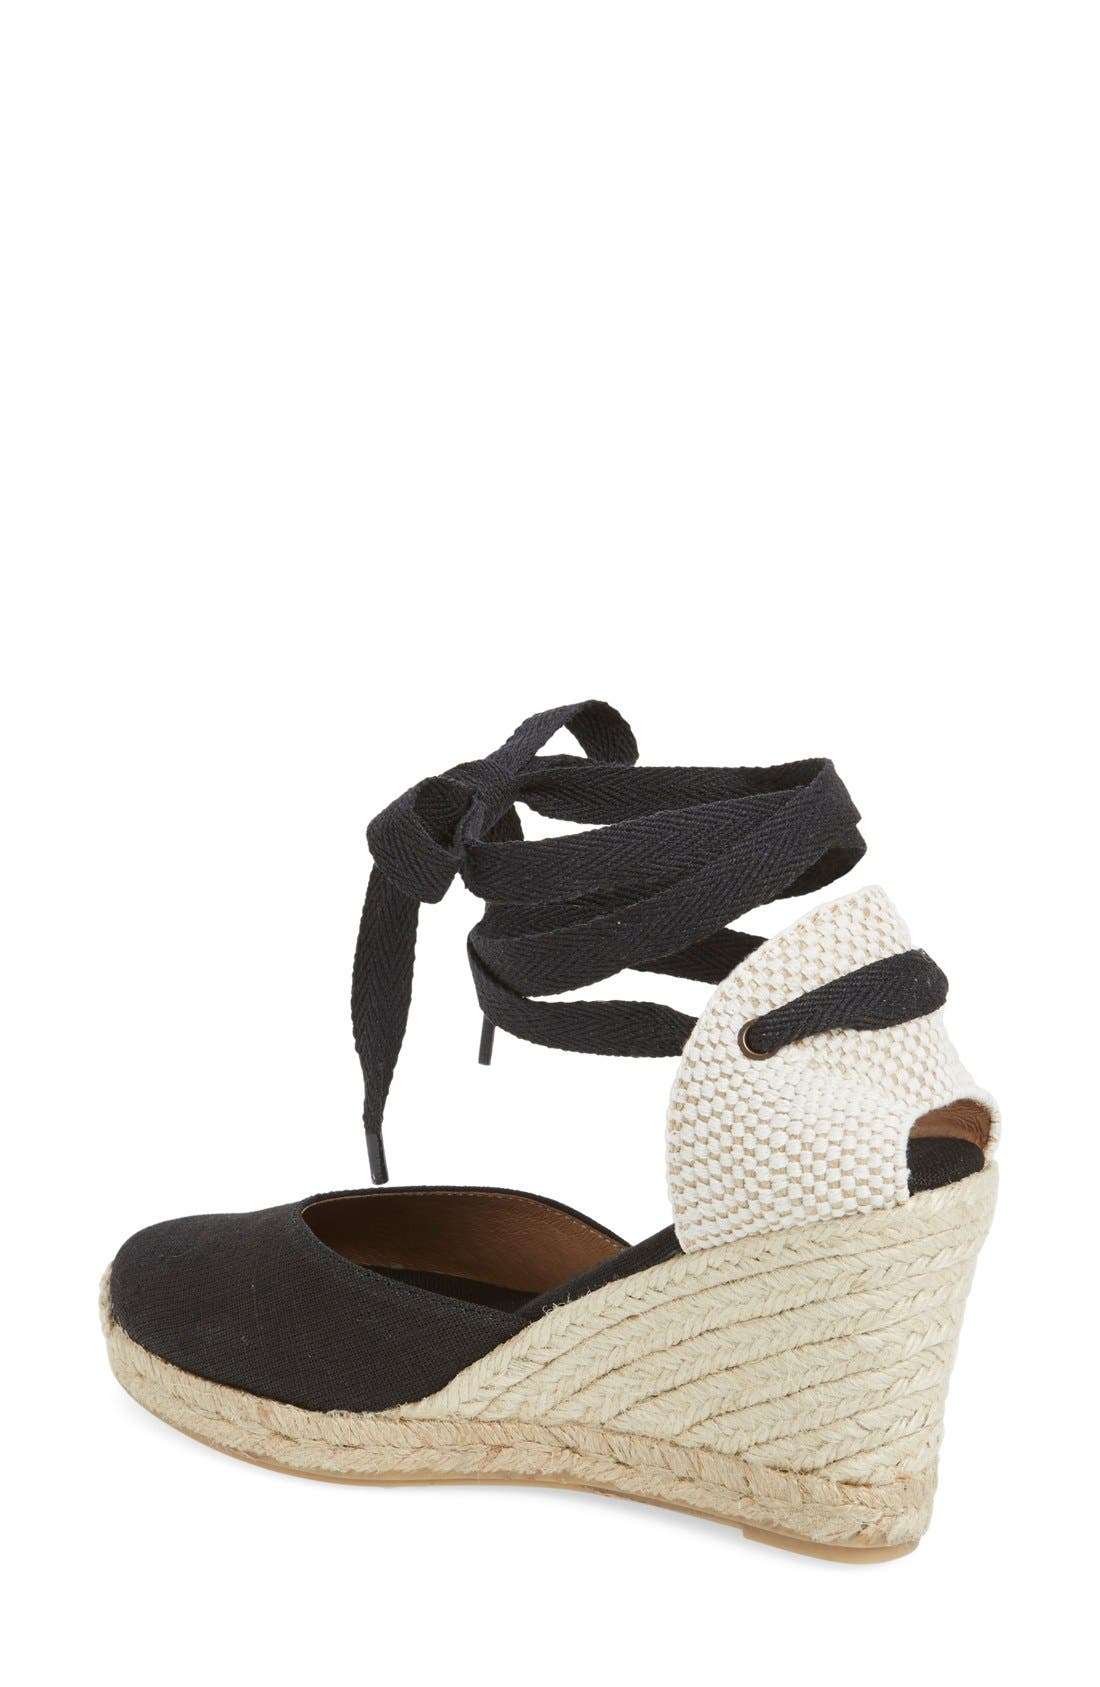 Wedge Lace-Up Espadrille Sandal,                             Alternate thumbnail 8, color,                             BLACK